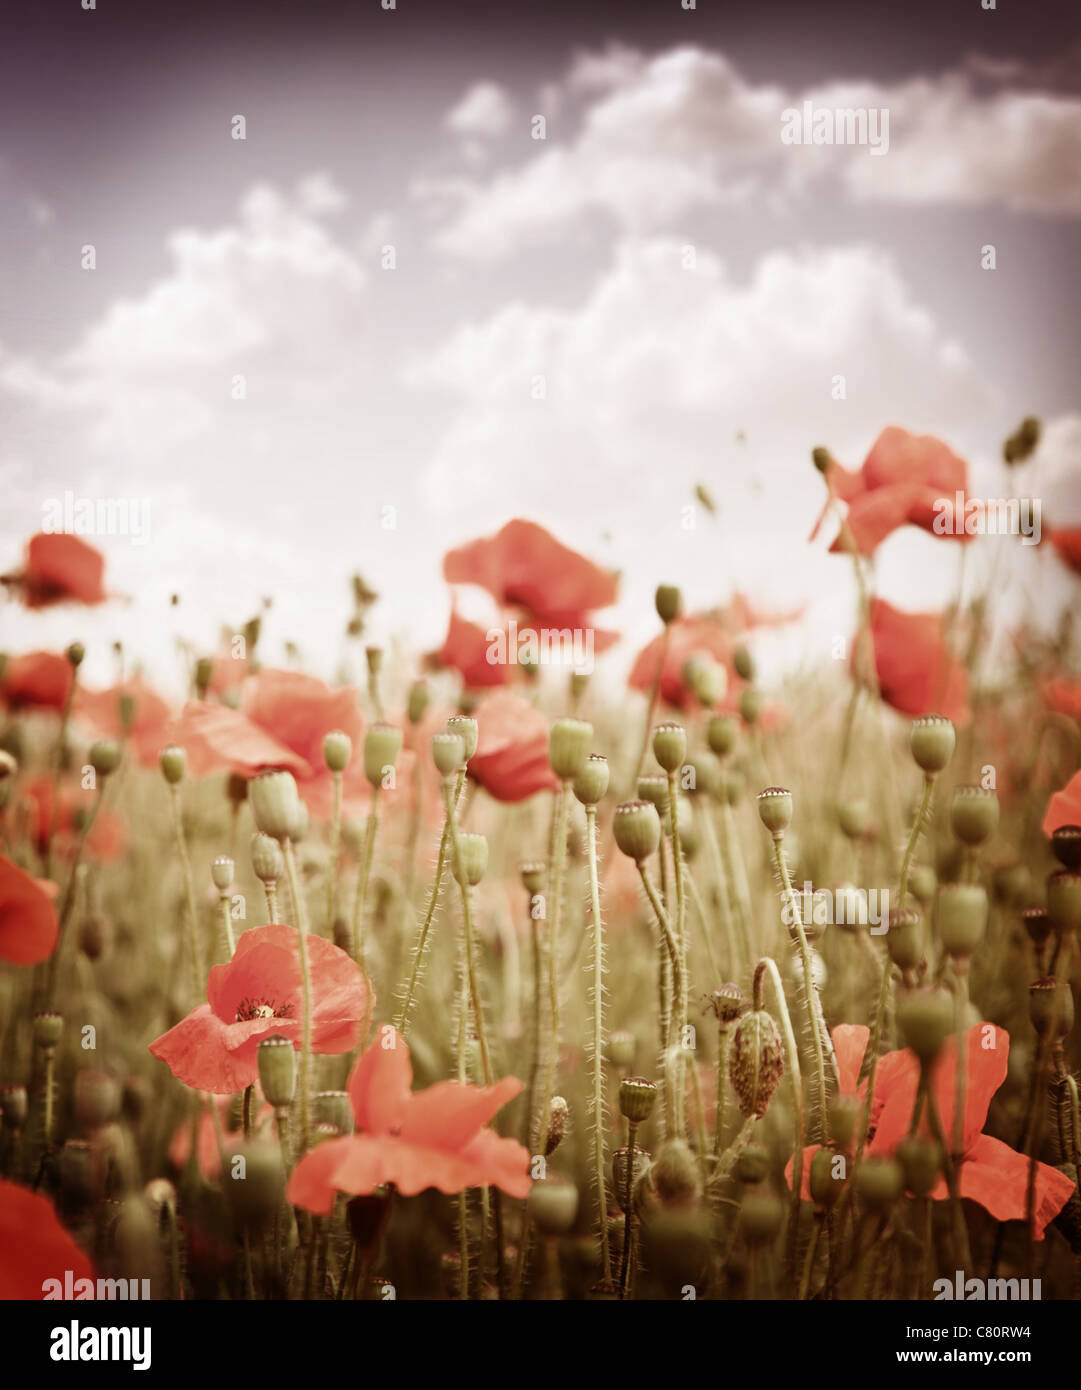 Stylized old slide. The field of poppies in the sky. - Stock Image